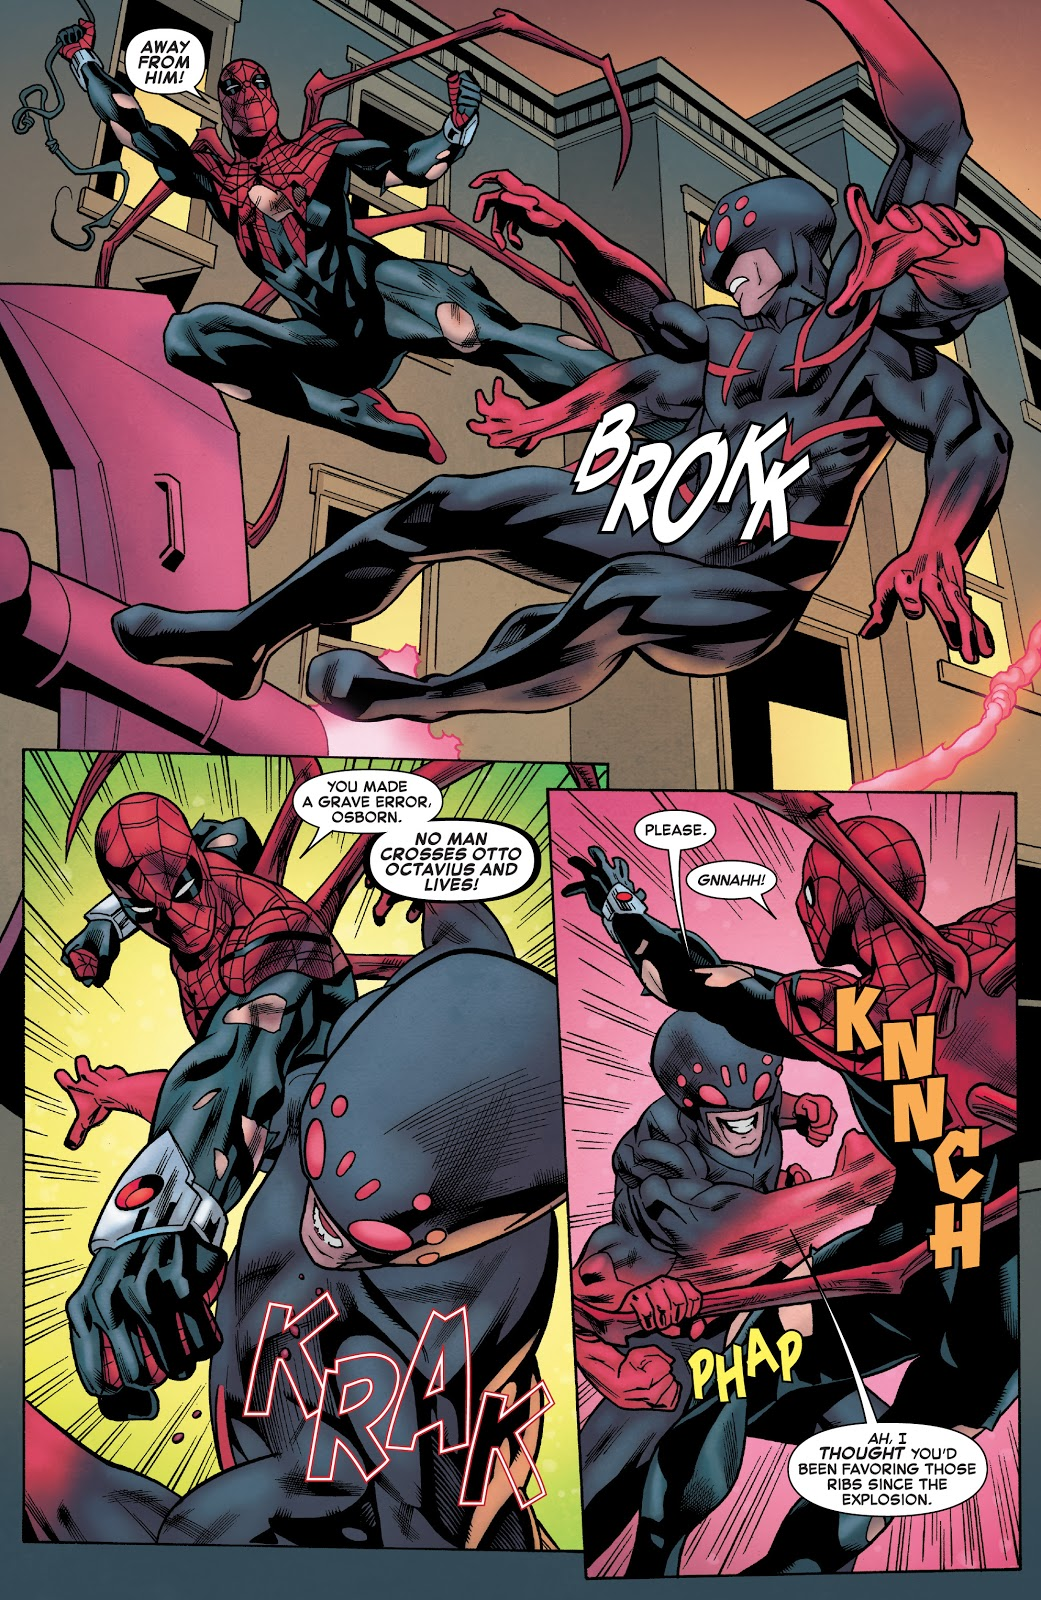 Spider-Man (Norman Osborn) VS Superior Spider-Man